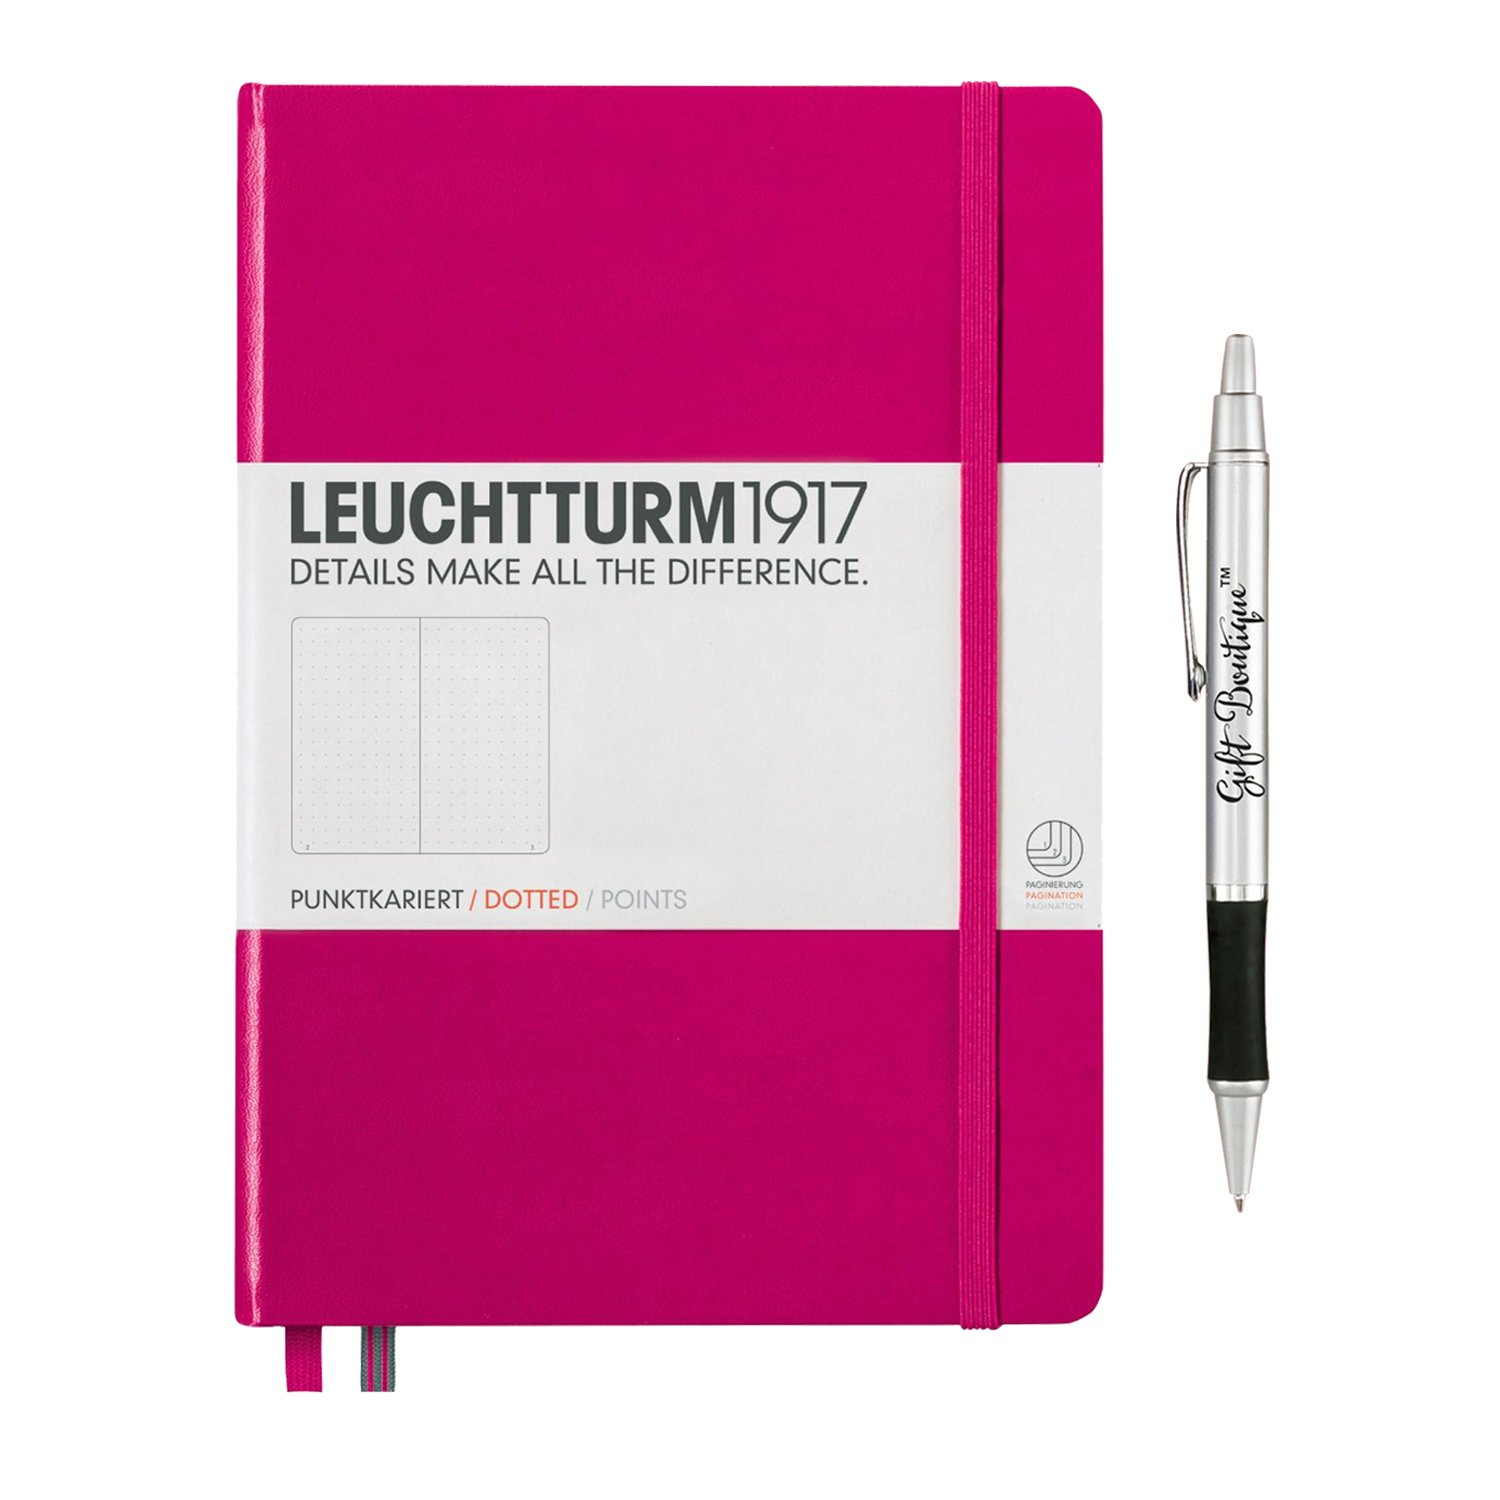 Leuchtturm1917 Bullet Journal - Berry